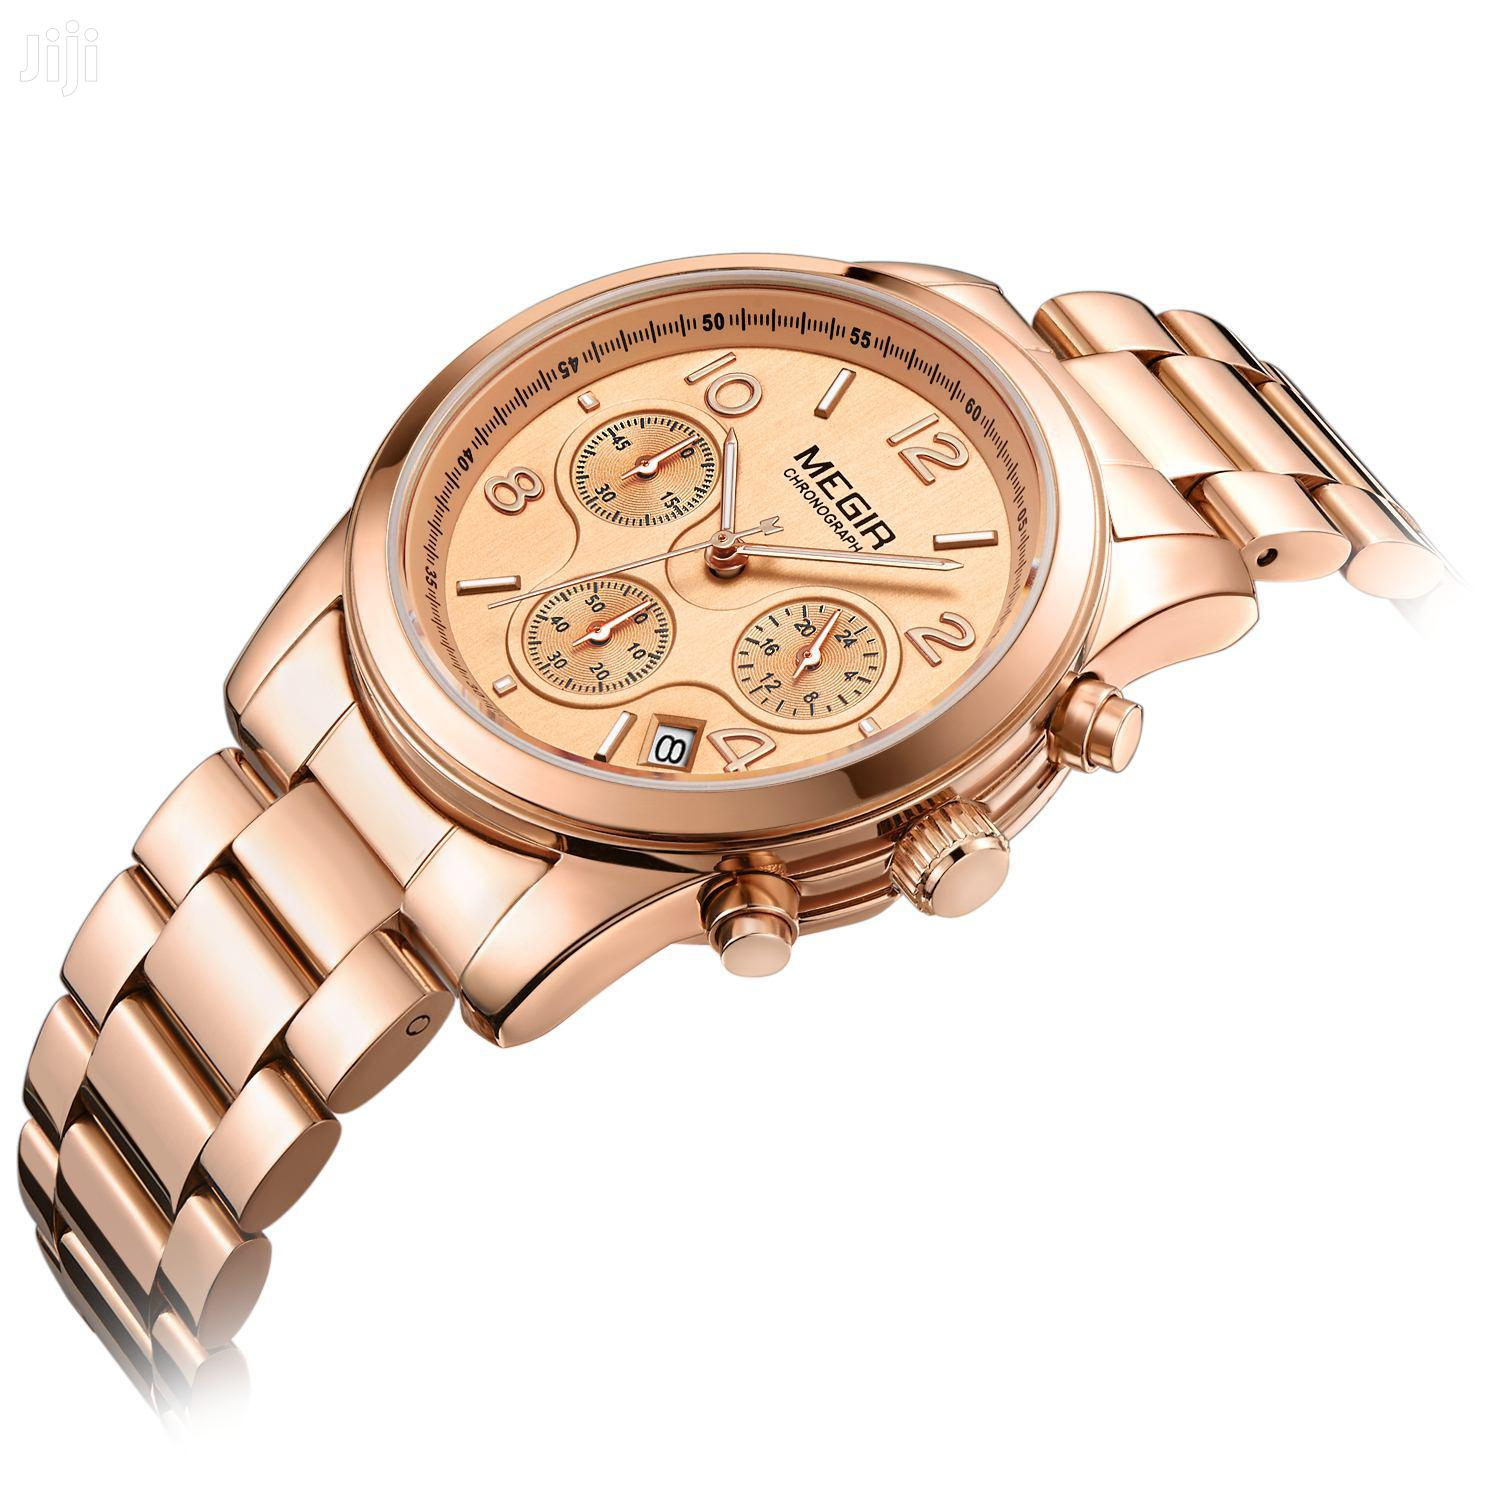 Archive: Women Chronograph Megir Watch Rosegold